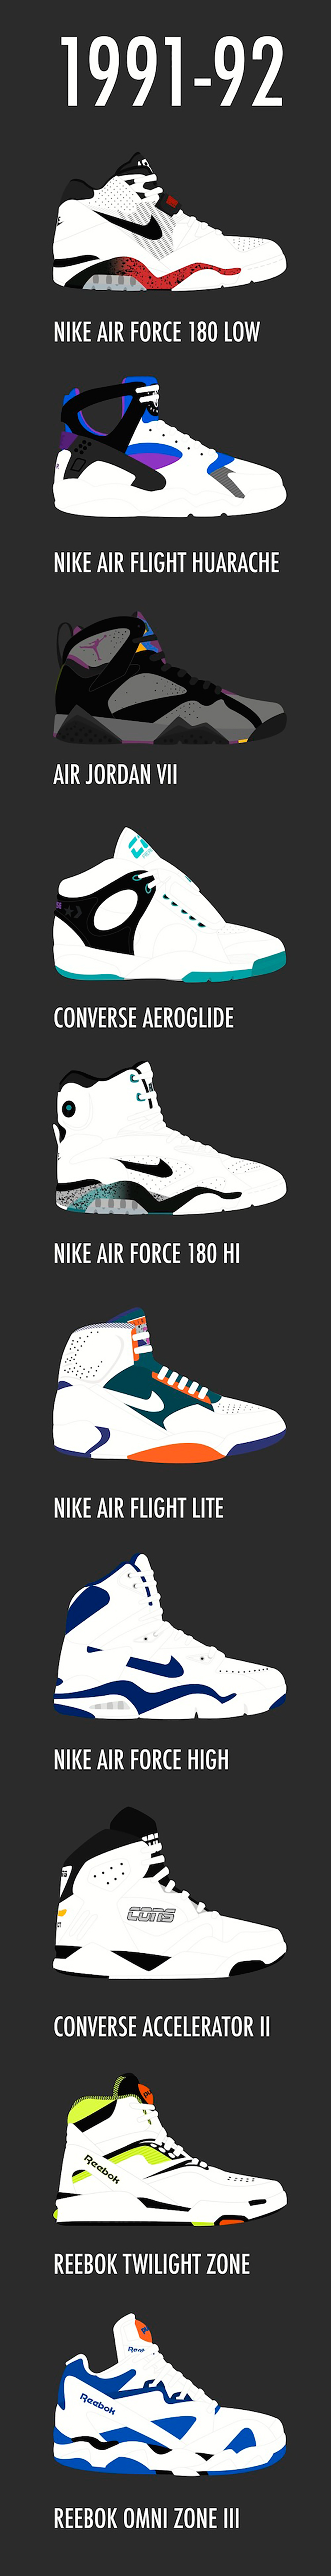 sneakers_90s-fab-91-92